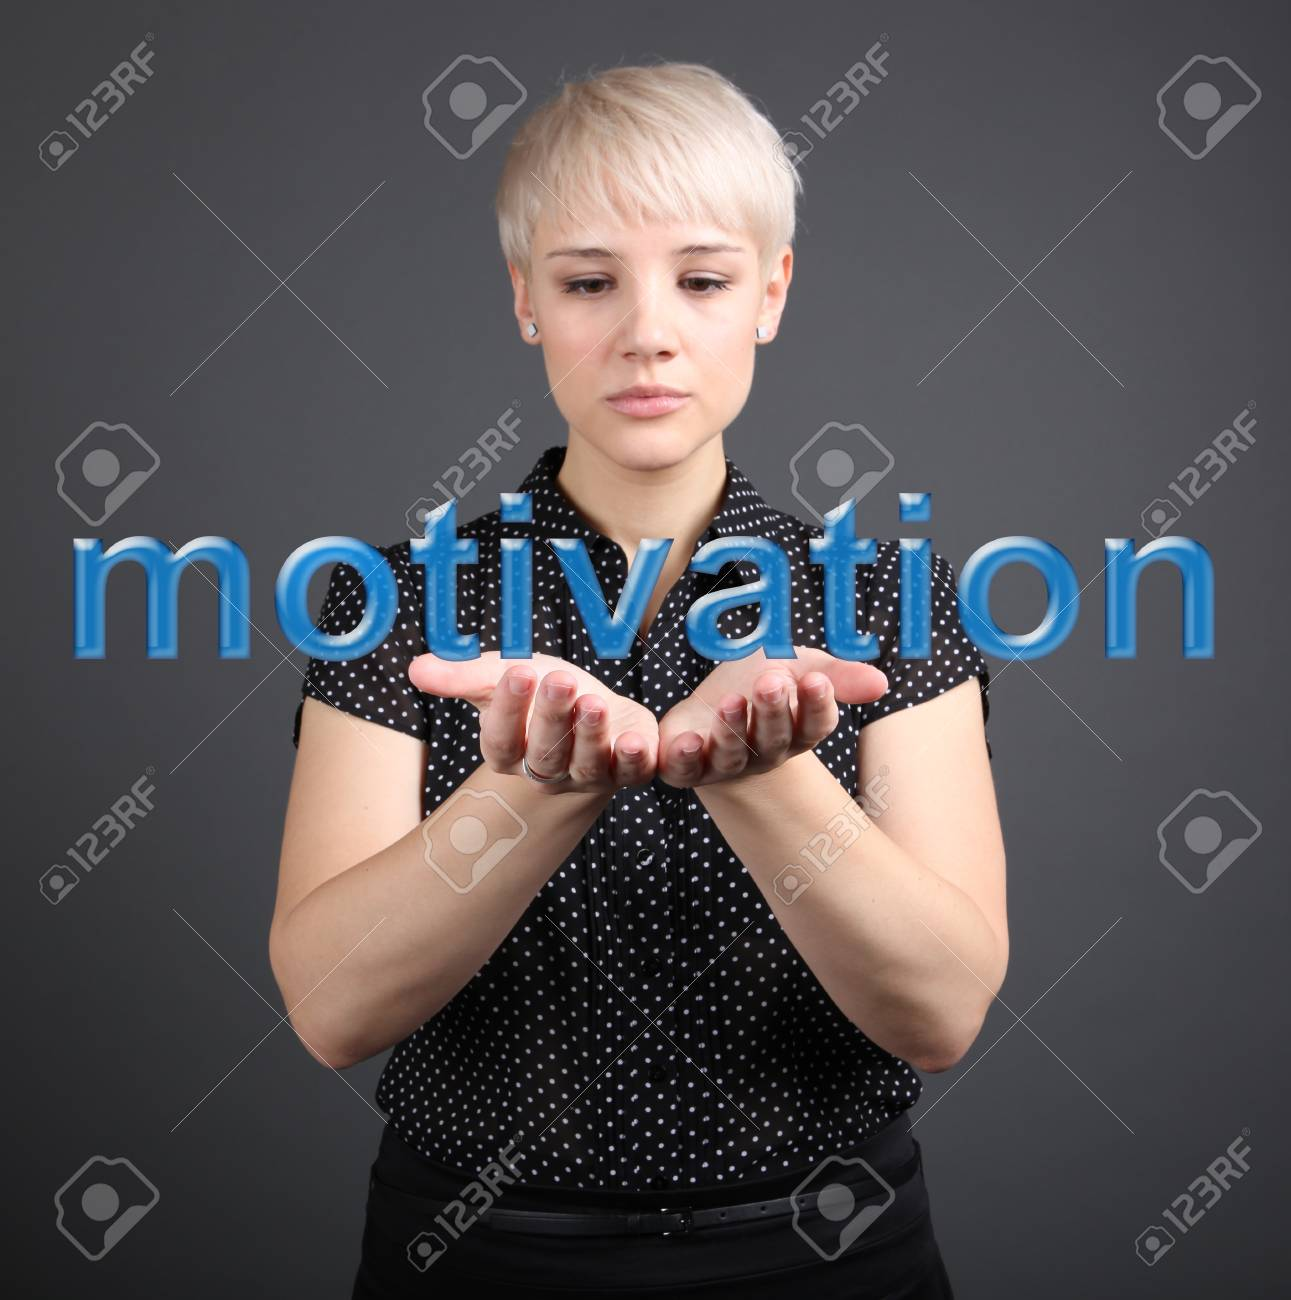 Girl holding motivation sign - business concept Stock Photo - 17394721